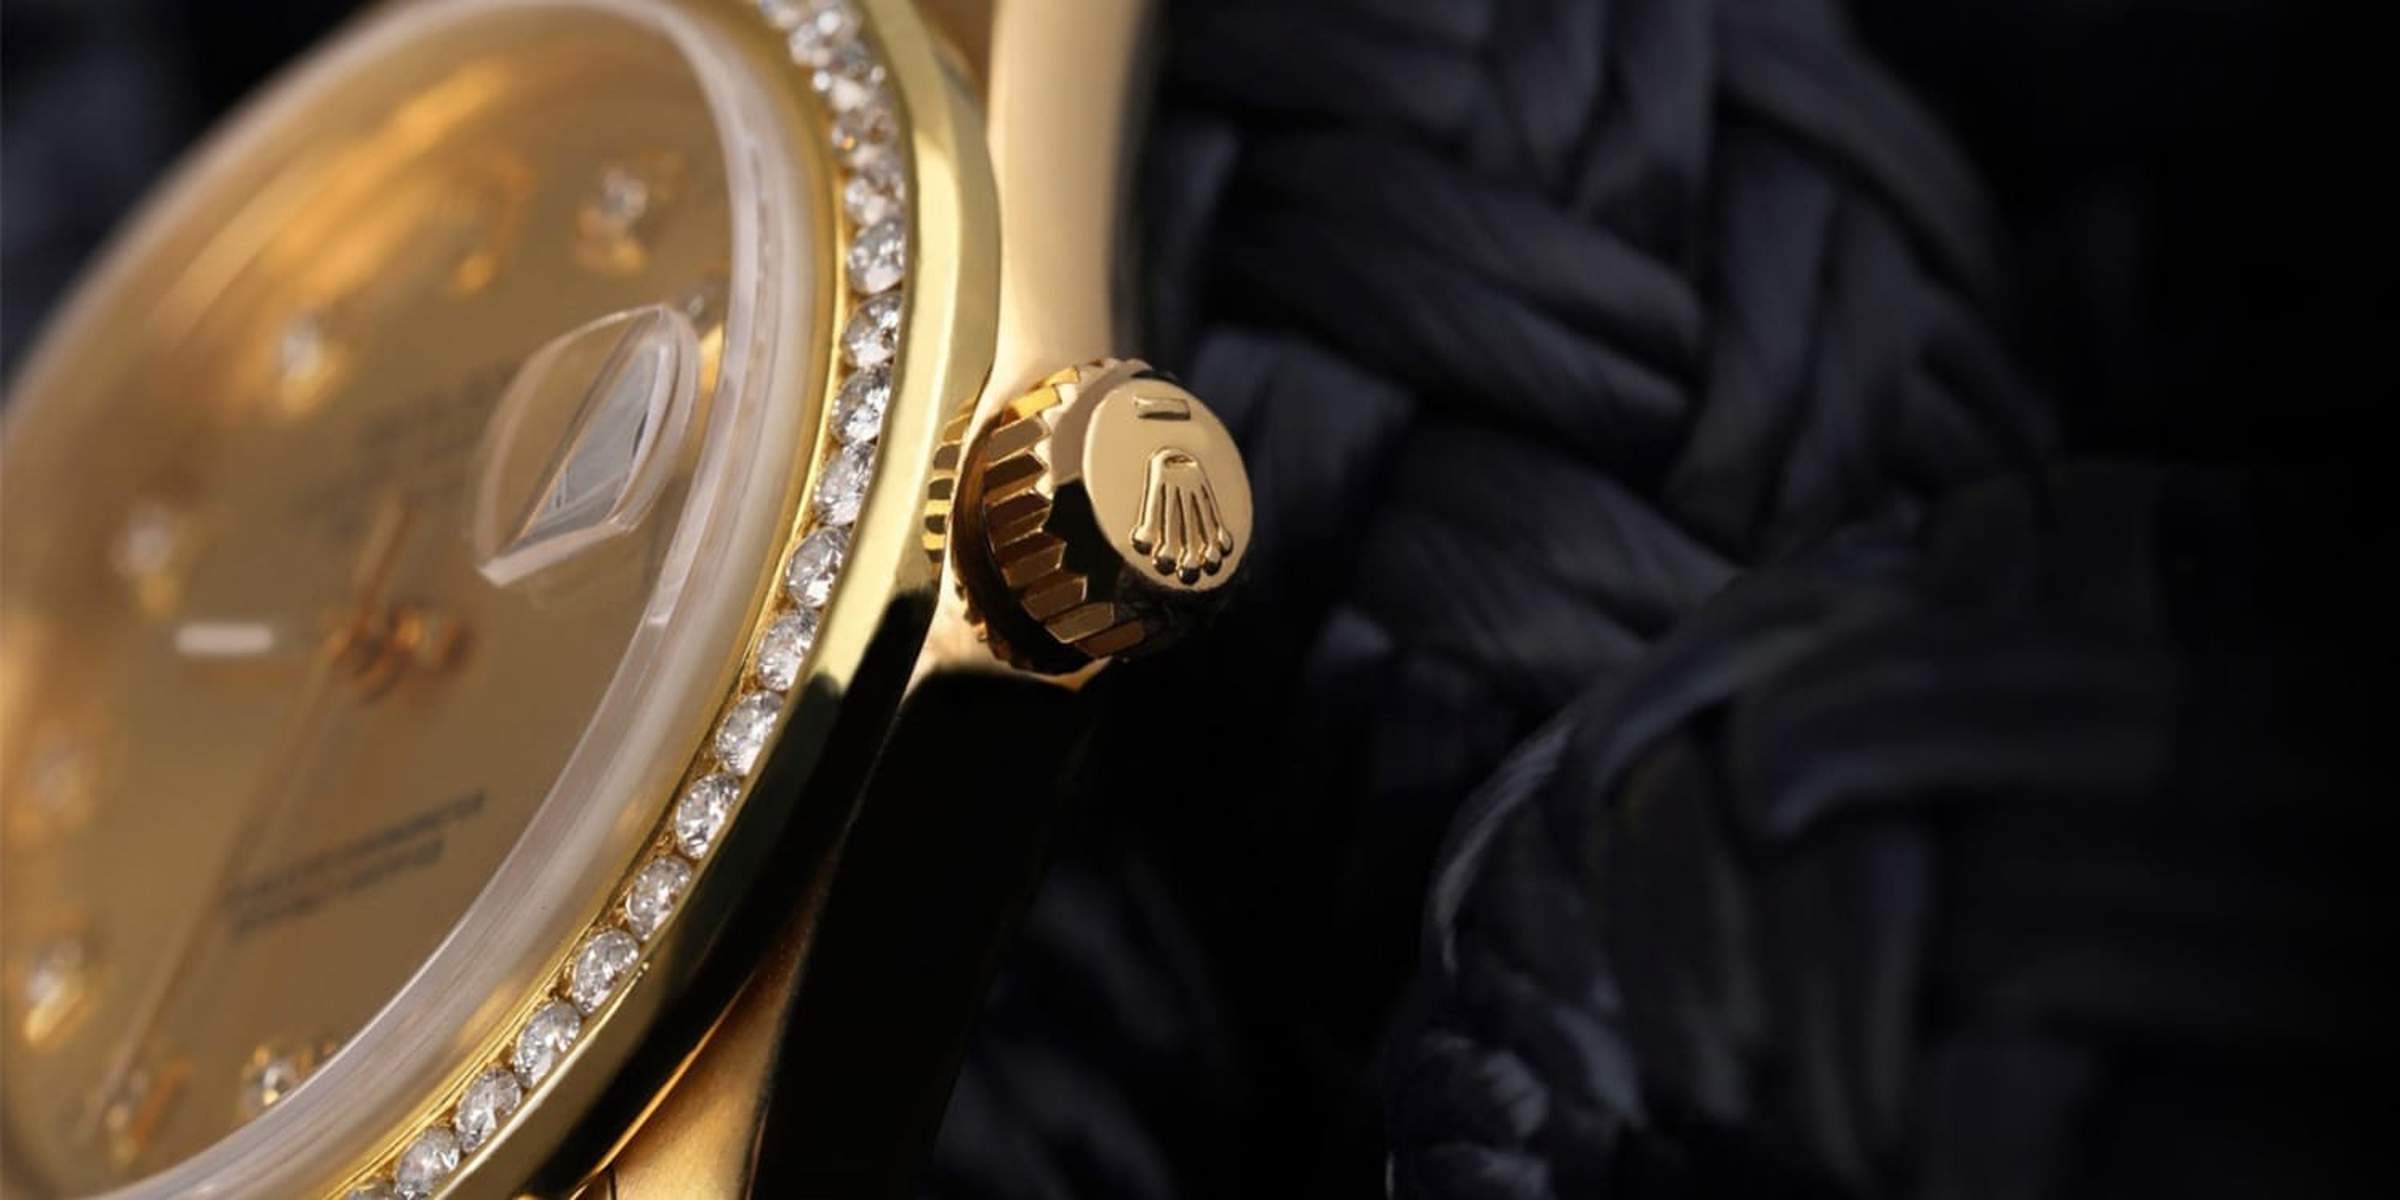 Rolex-Why-is-Rolex-so-expensive-Magazin-2-1-1